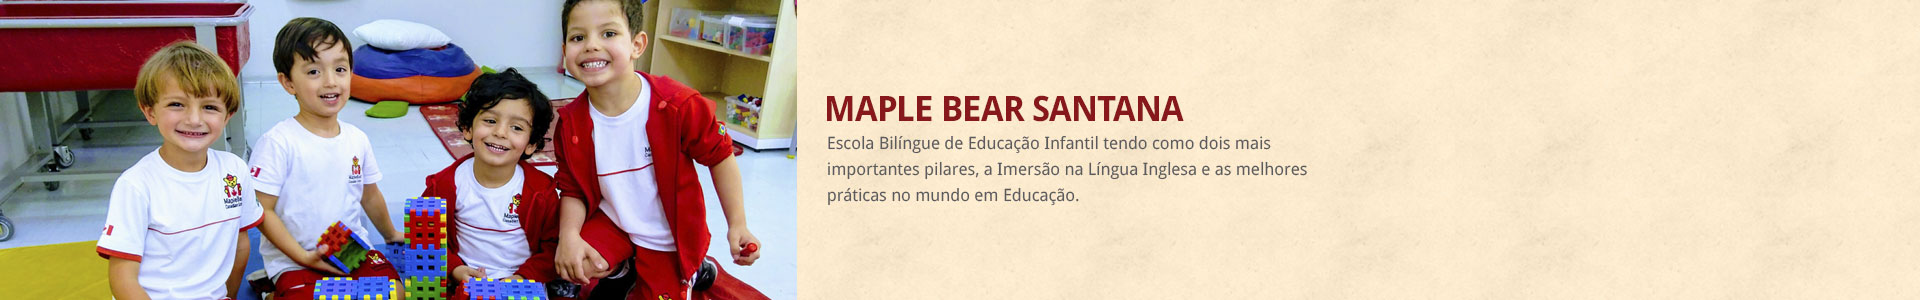 banner a maple bear santana